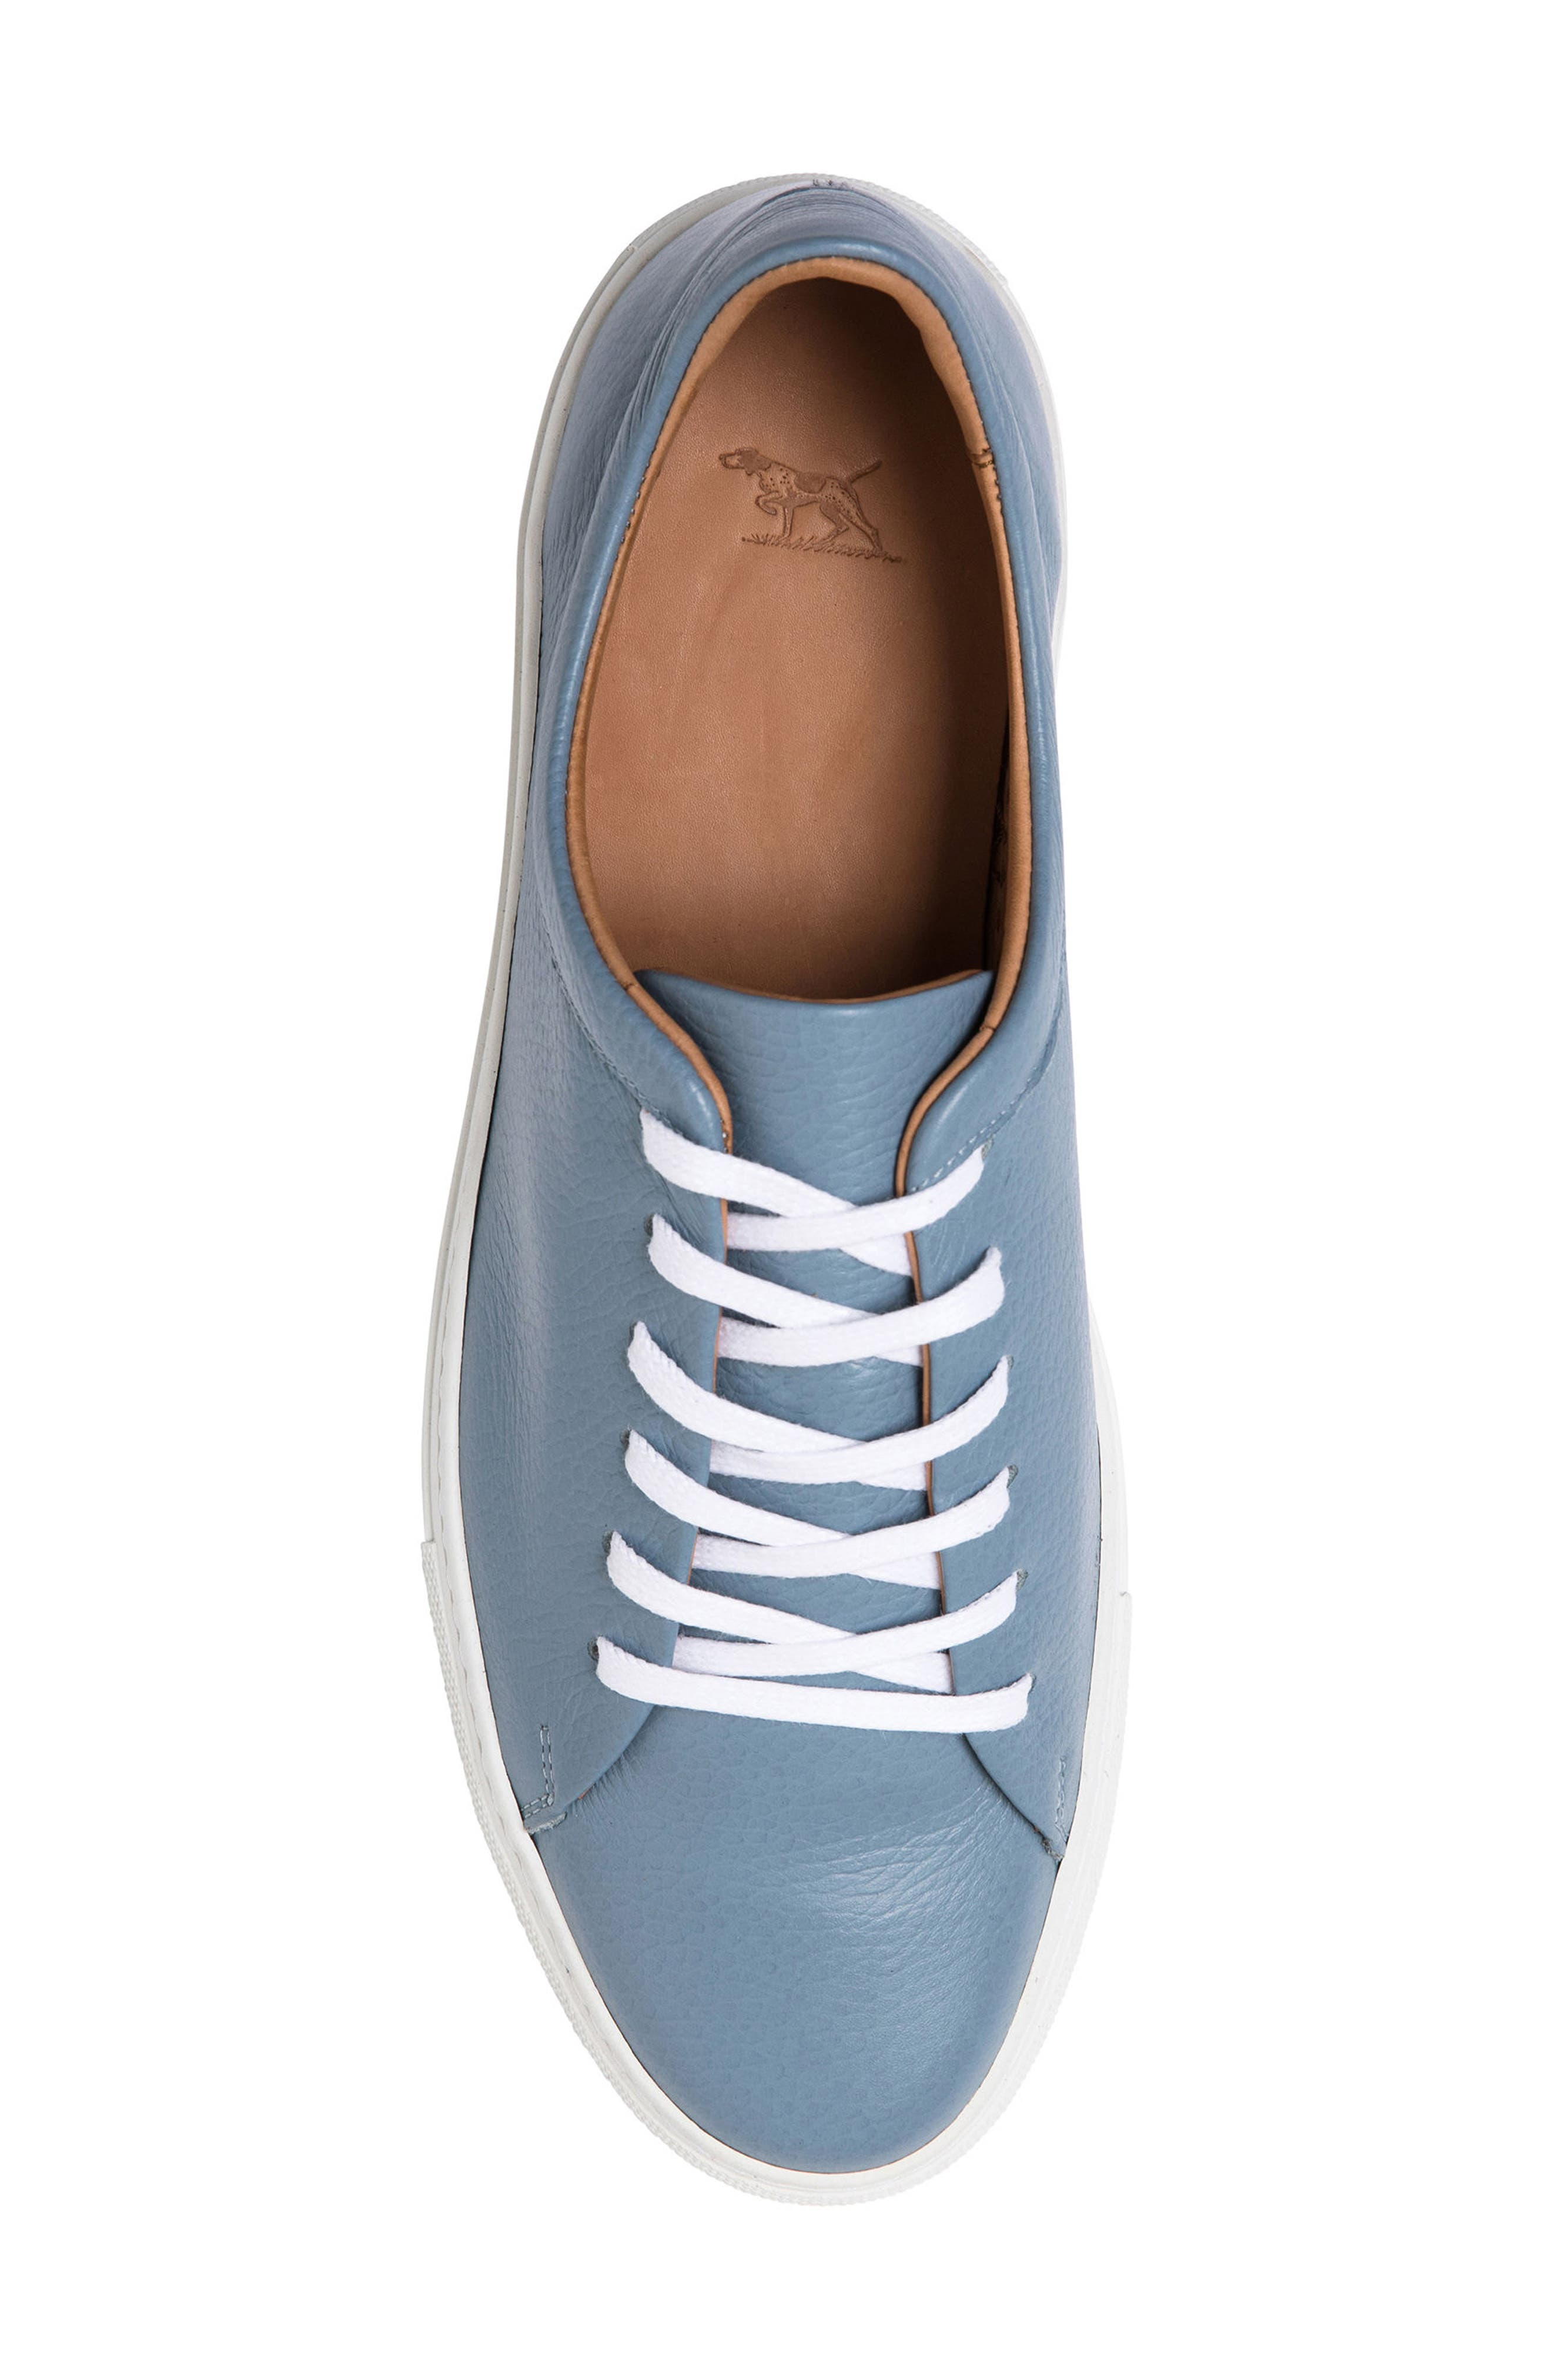 Windemere Sneaker,                             Alternate thumbnail 5, color,                             Sky Blue Leather